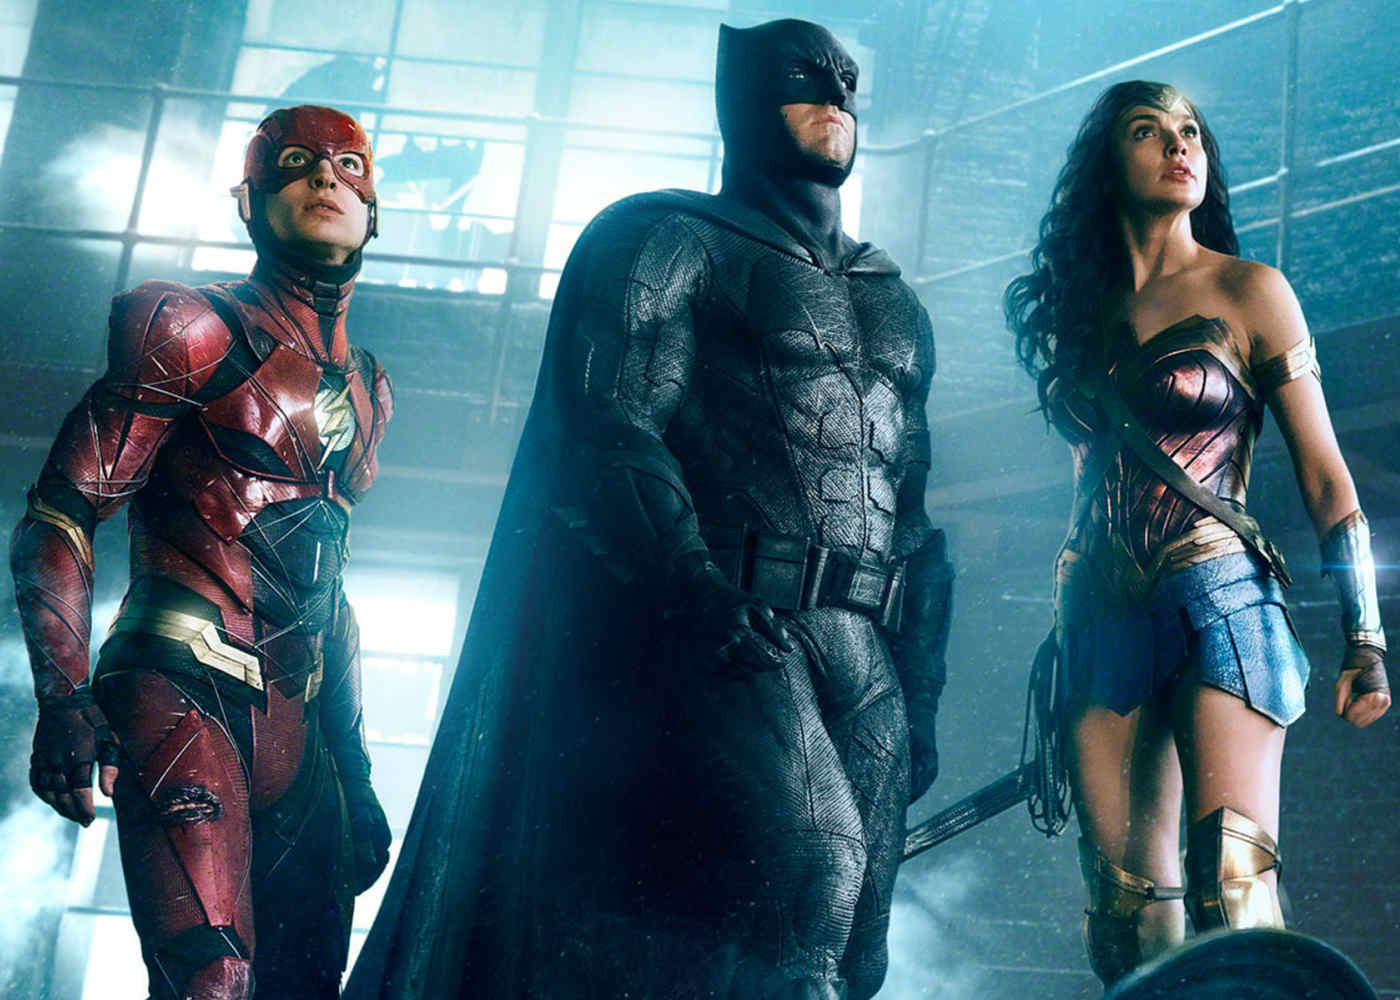 The Flash: Ben Affleck Enjoyed his Batman Return After 'Difficult' Time in Justice League